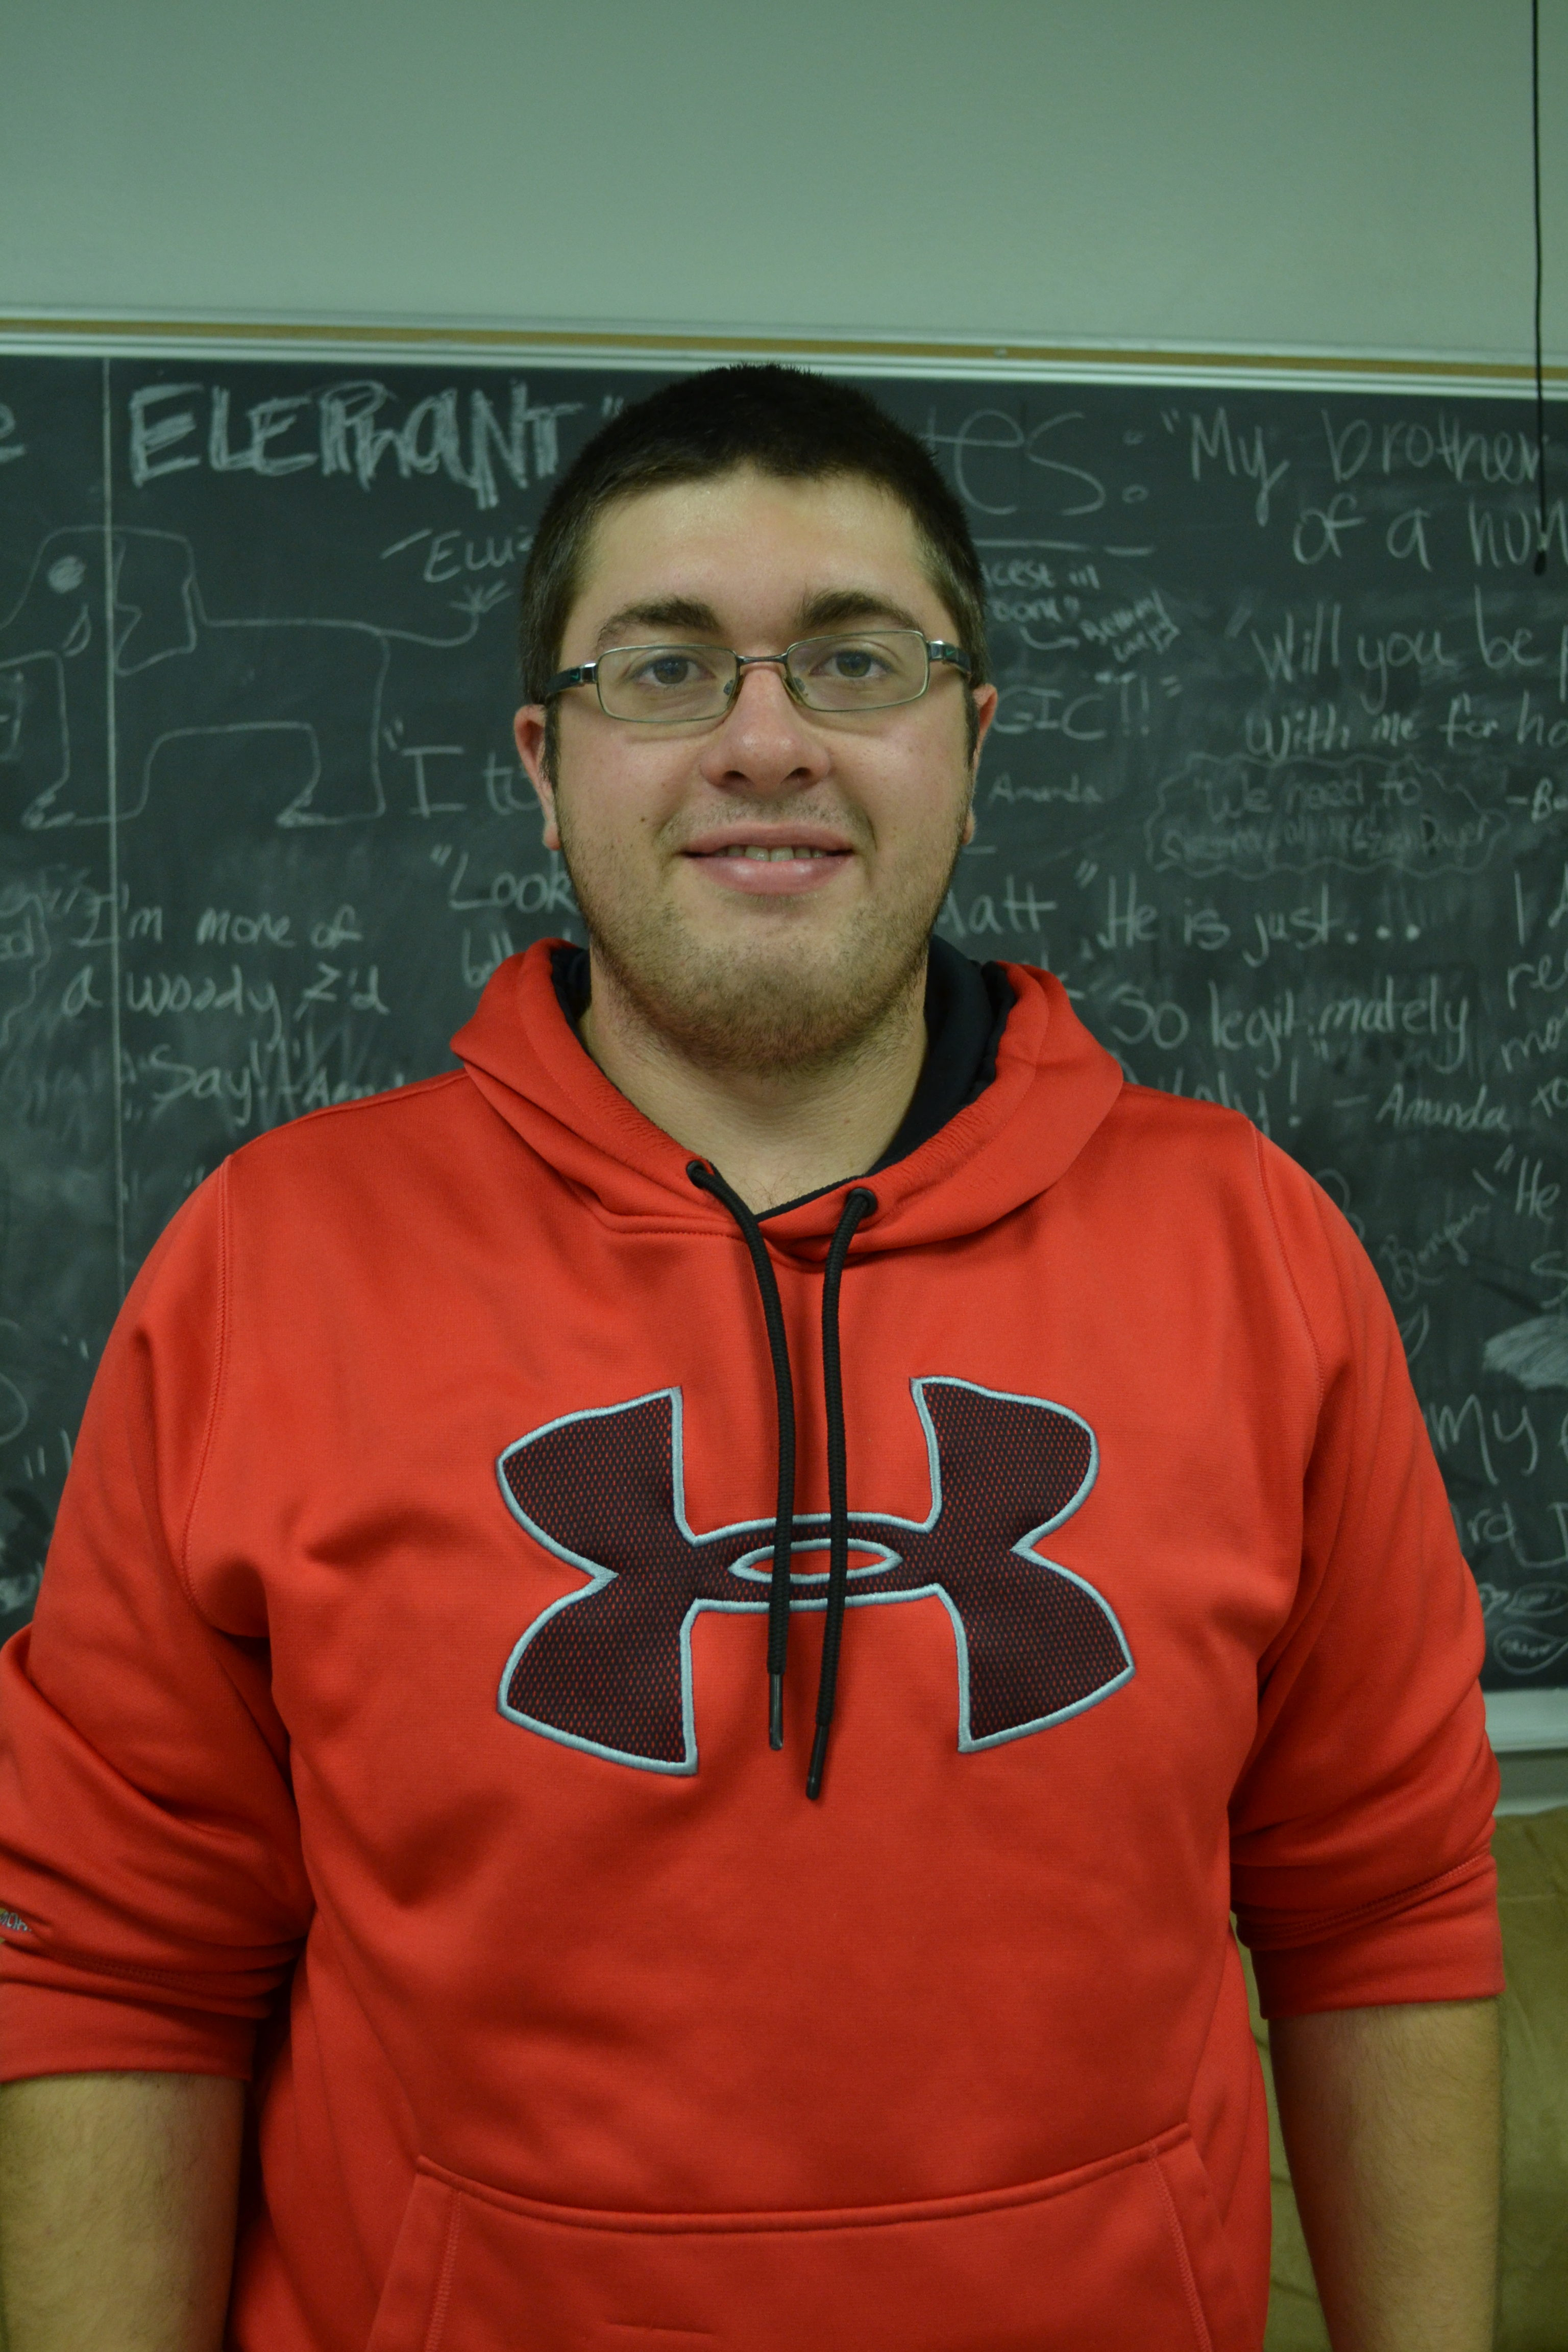 UW-River Falls student Cody Guenther